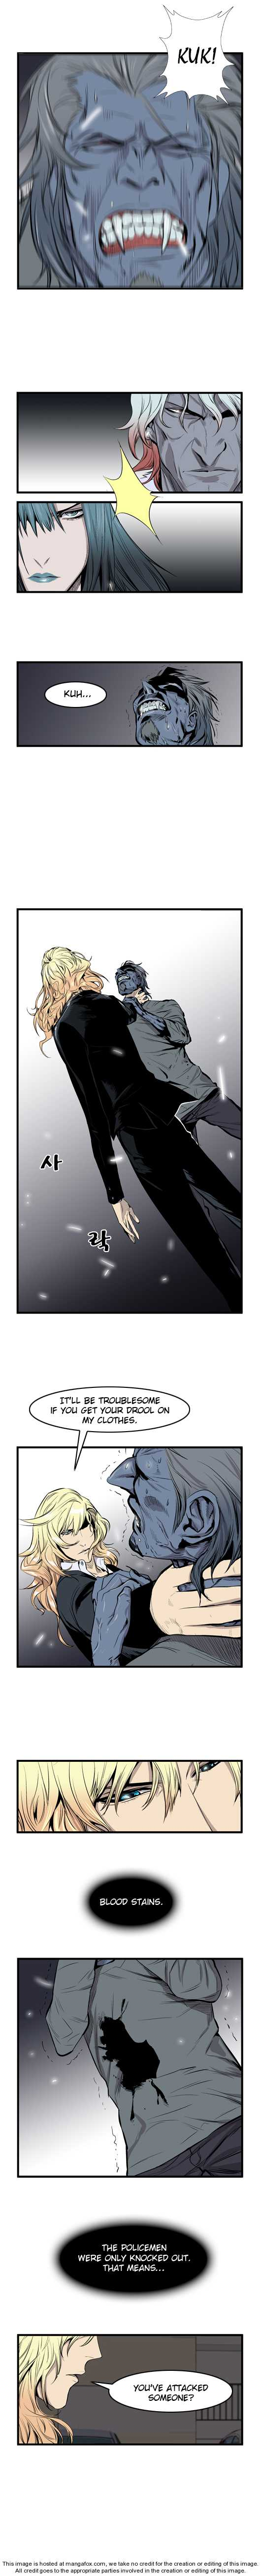 Noblesse 44 Page 2